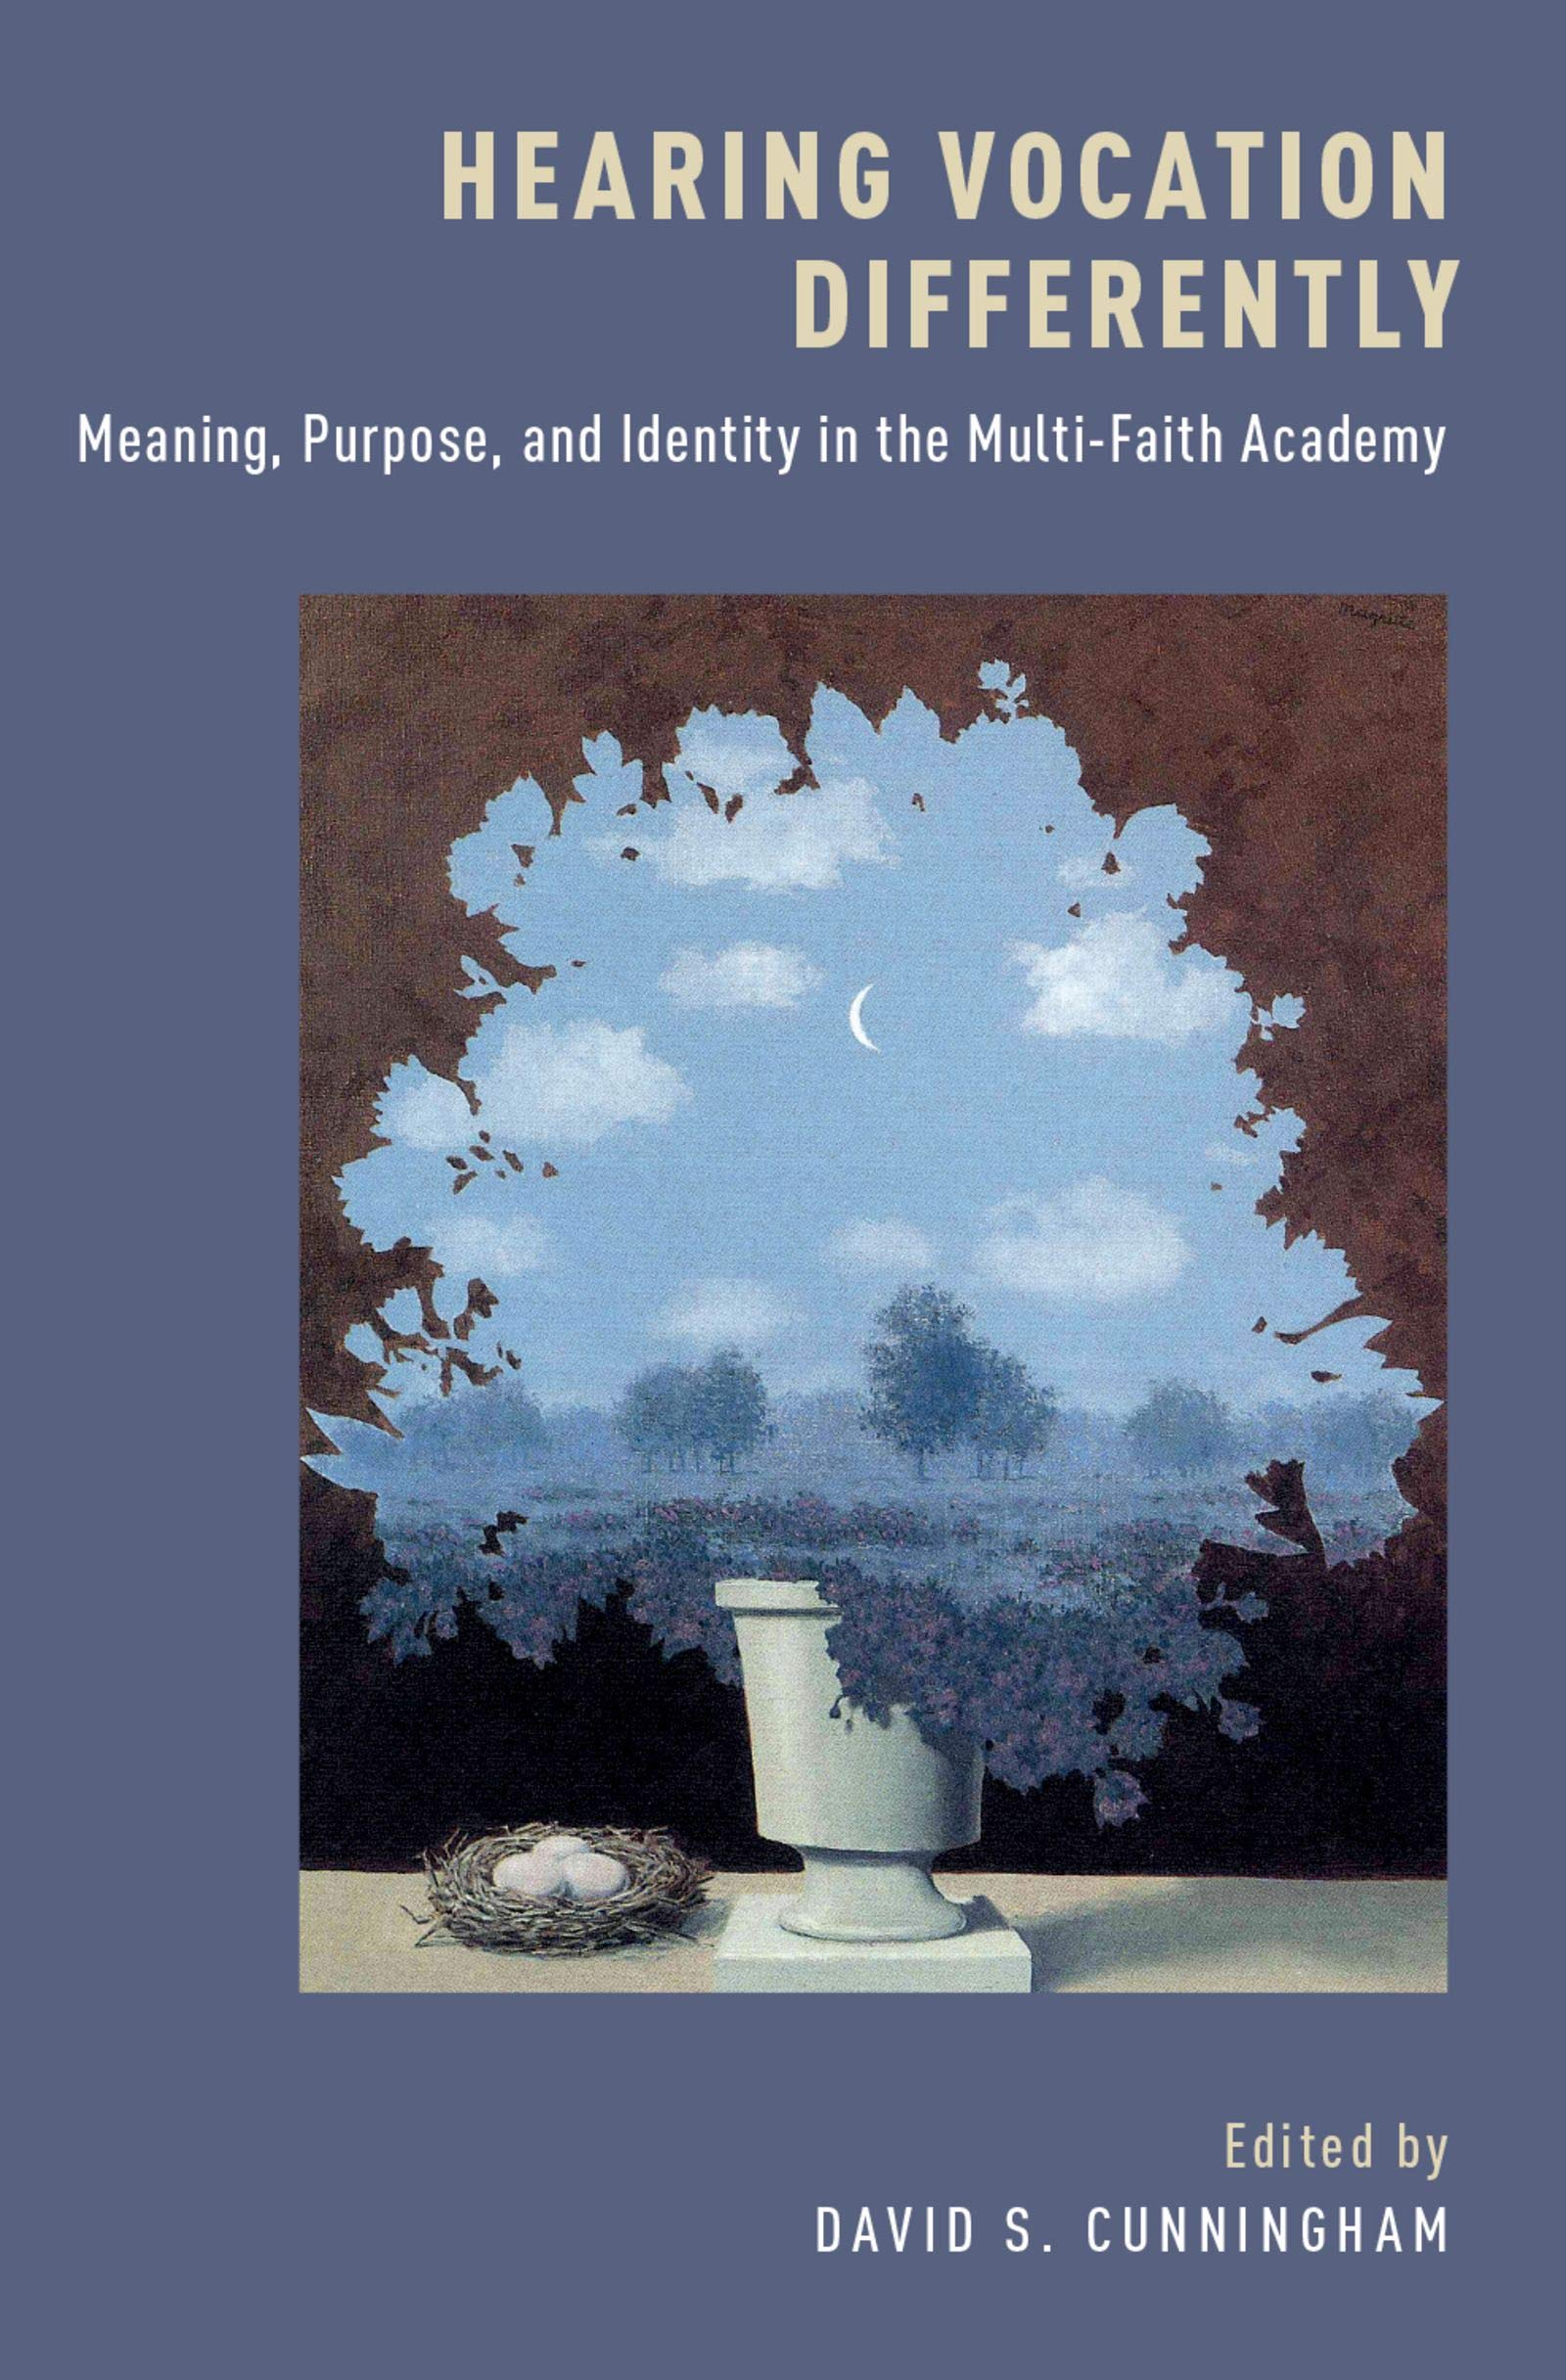 Hearing Vocation Differently: Meaning, Purpose, and Identity in the Multi-Faith Academy